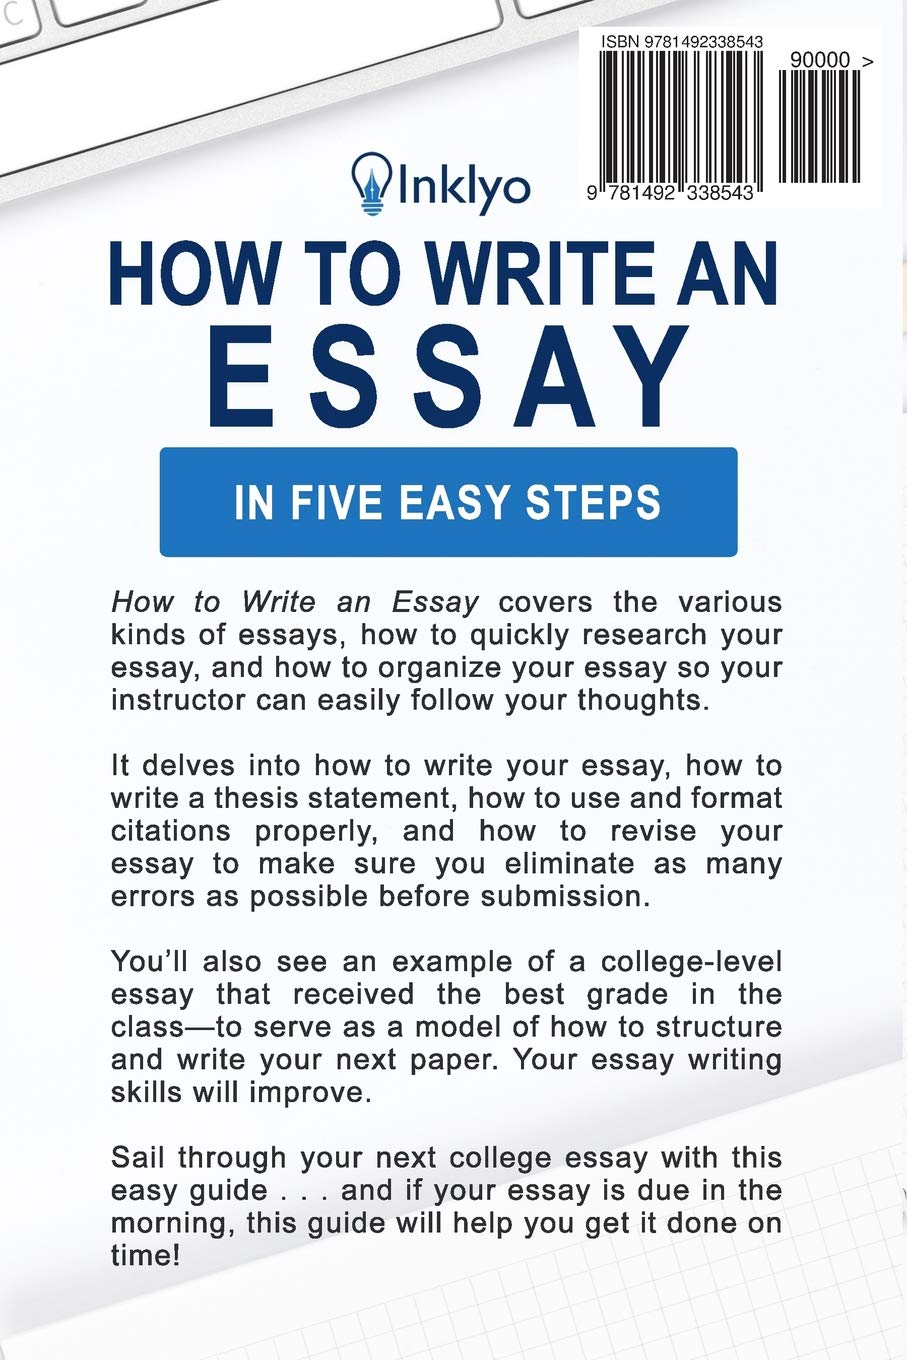 003 Essay Example 71v7ckw5pll How Do You Write Unbelievable An A Good Outline To Introduction Paragraph Argumentative In Third Person Full